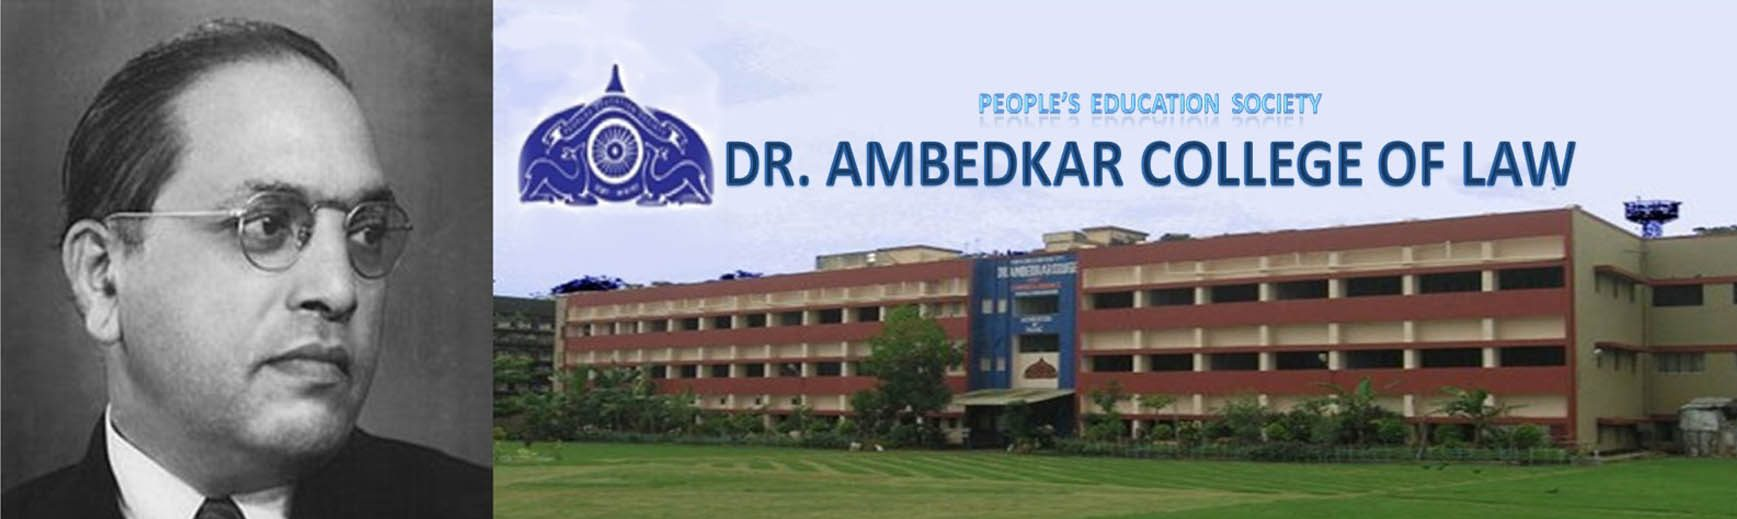 Dr. Ambedkar College of Law- Top LLB College in India